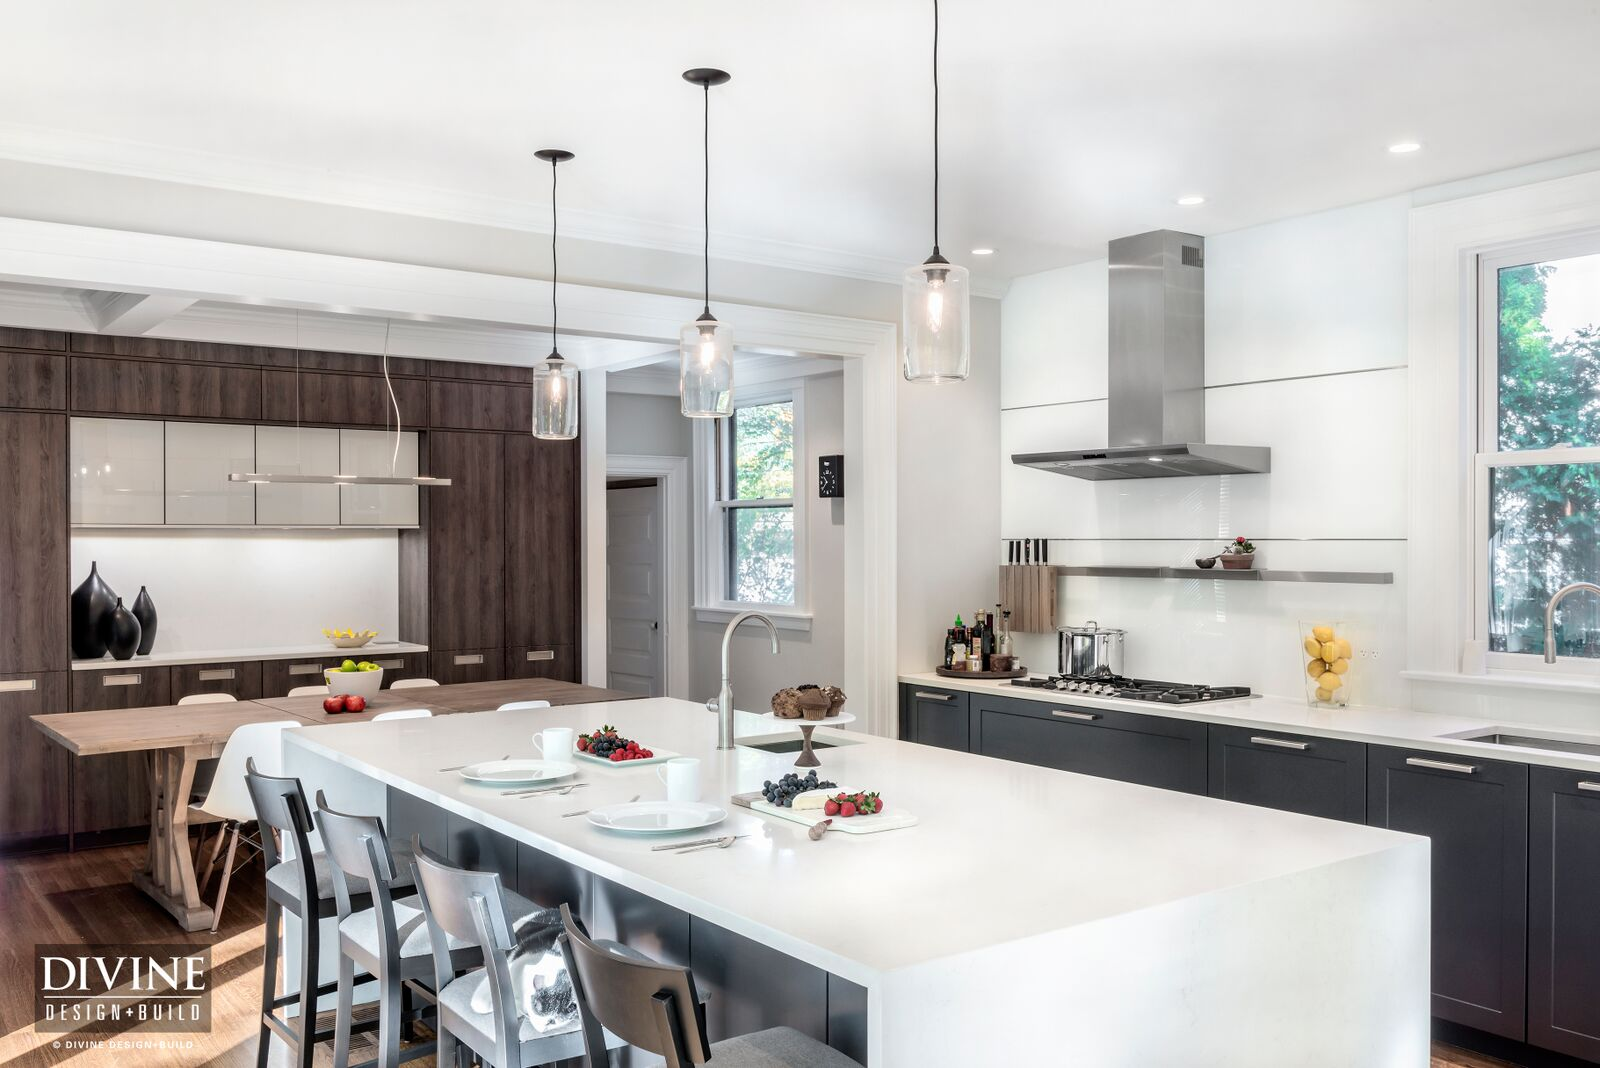 A Modern, High-Tech Kitchen in Newton, Mass. — Divine Design+Build